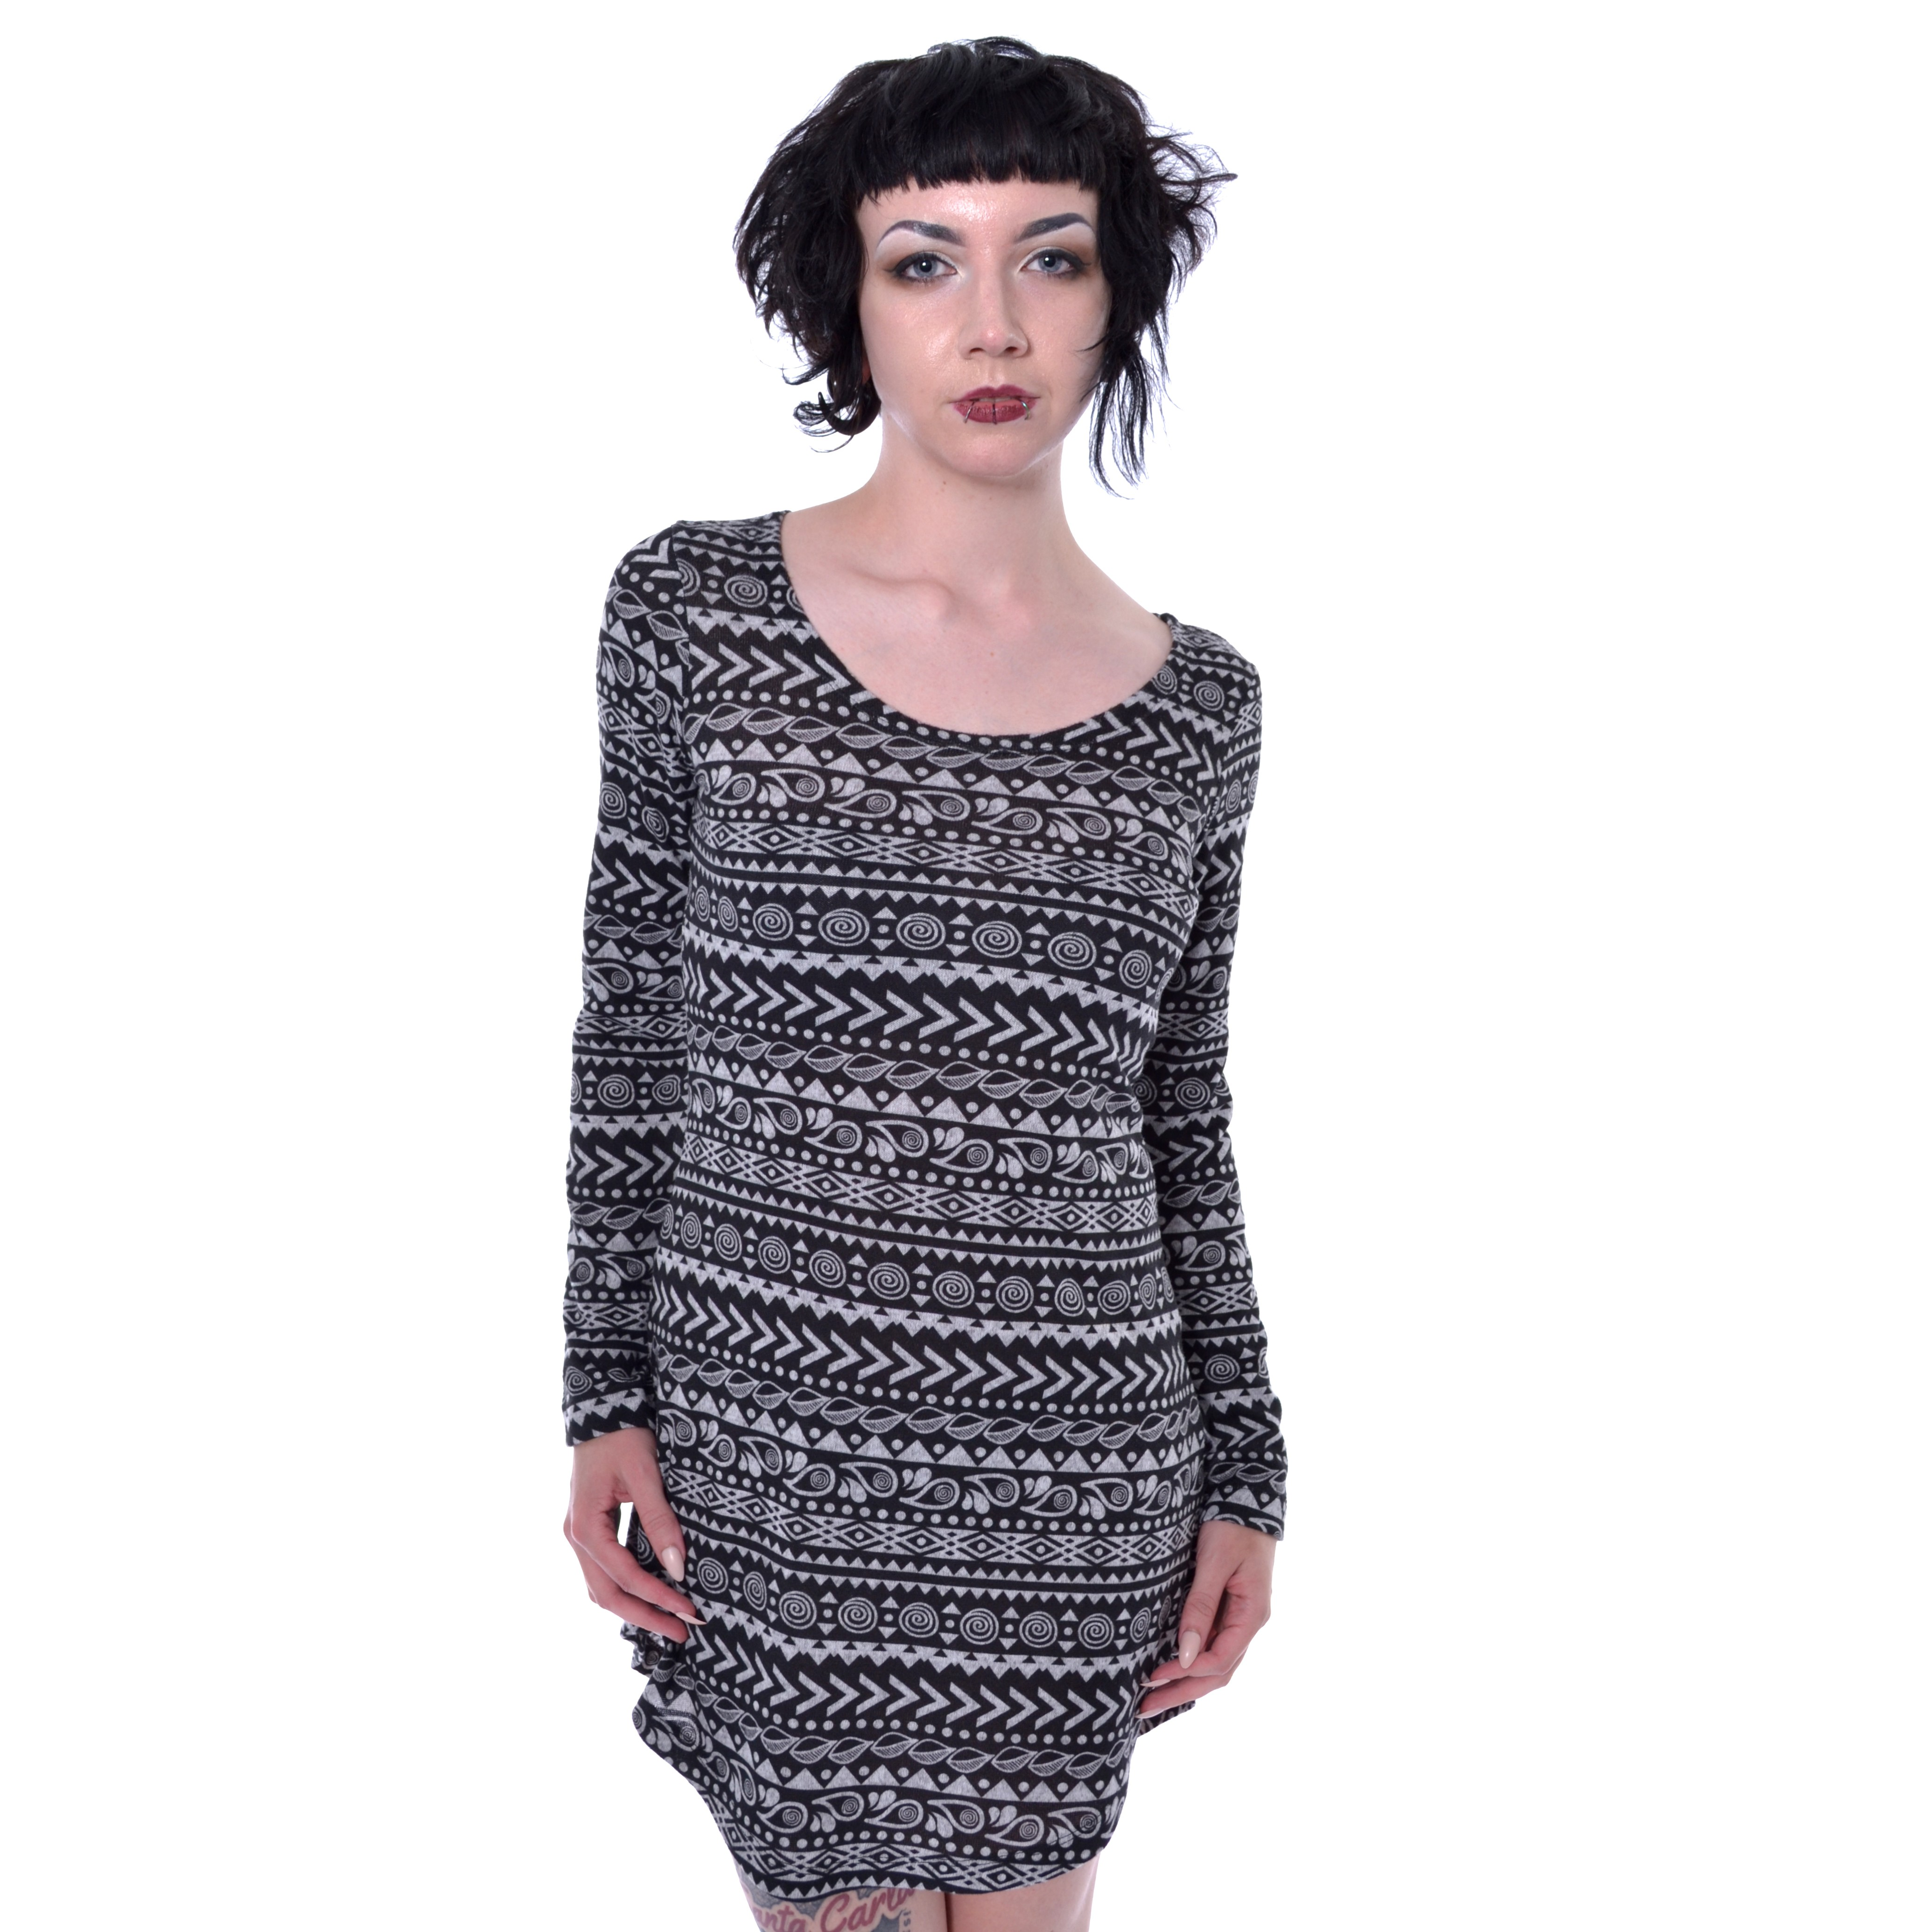 INNOCENT LIFESTYLE - Winter Dress Ladies Black *a1